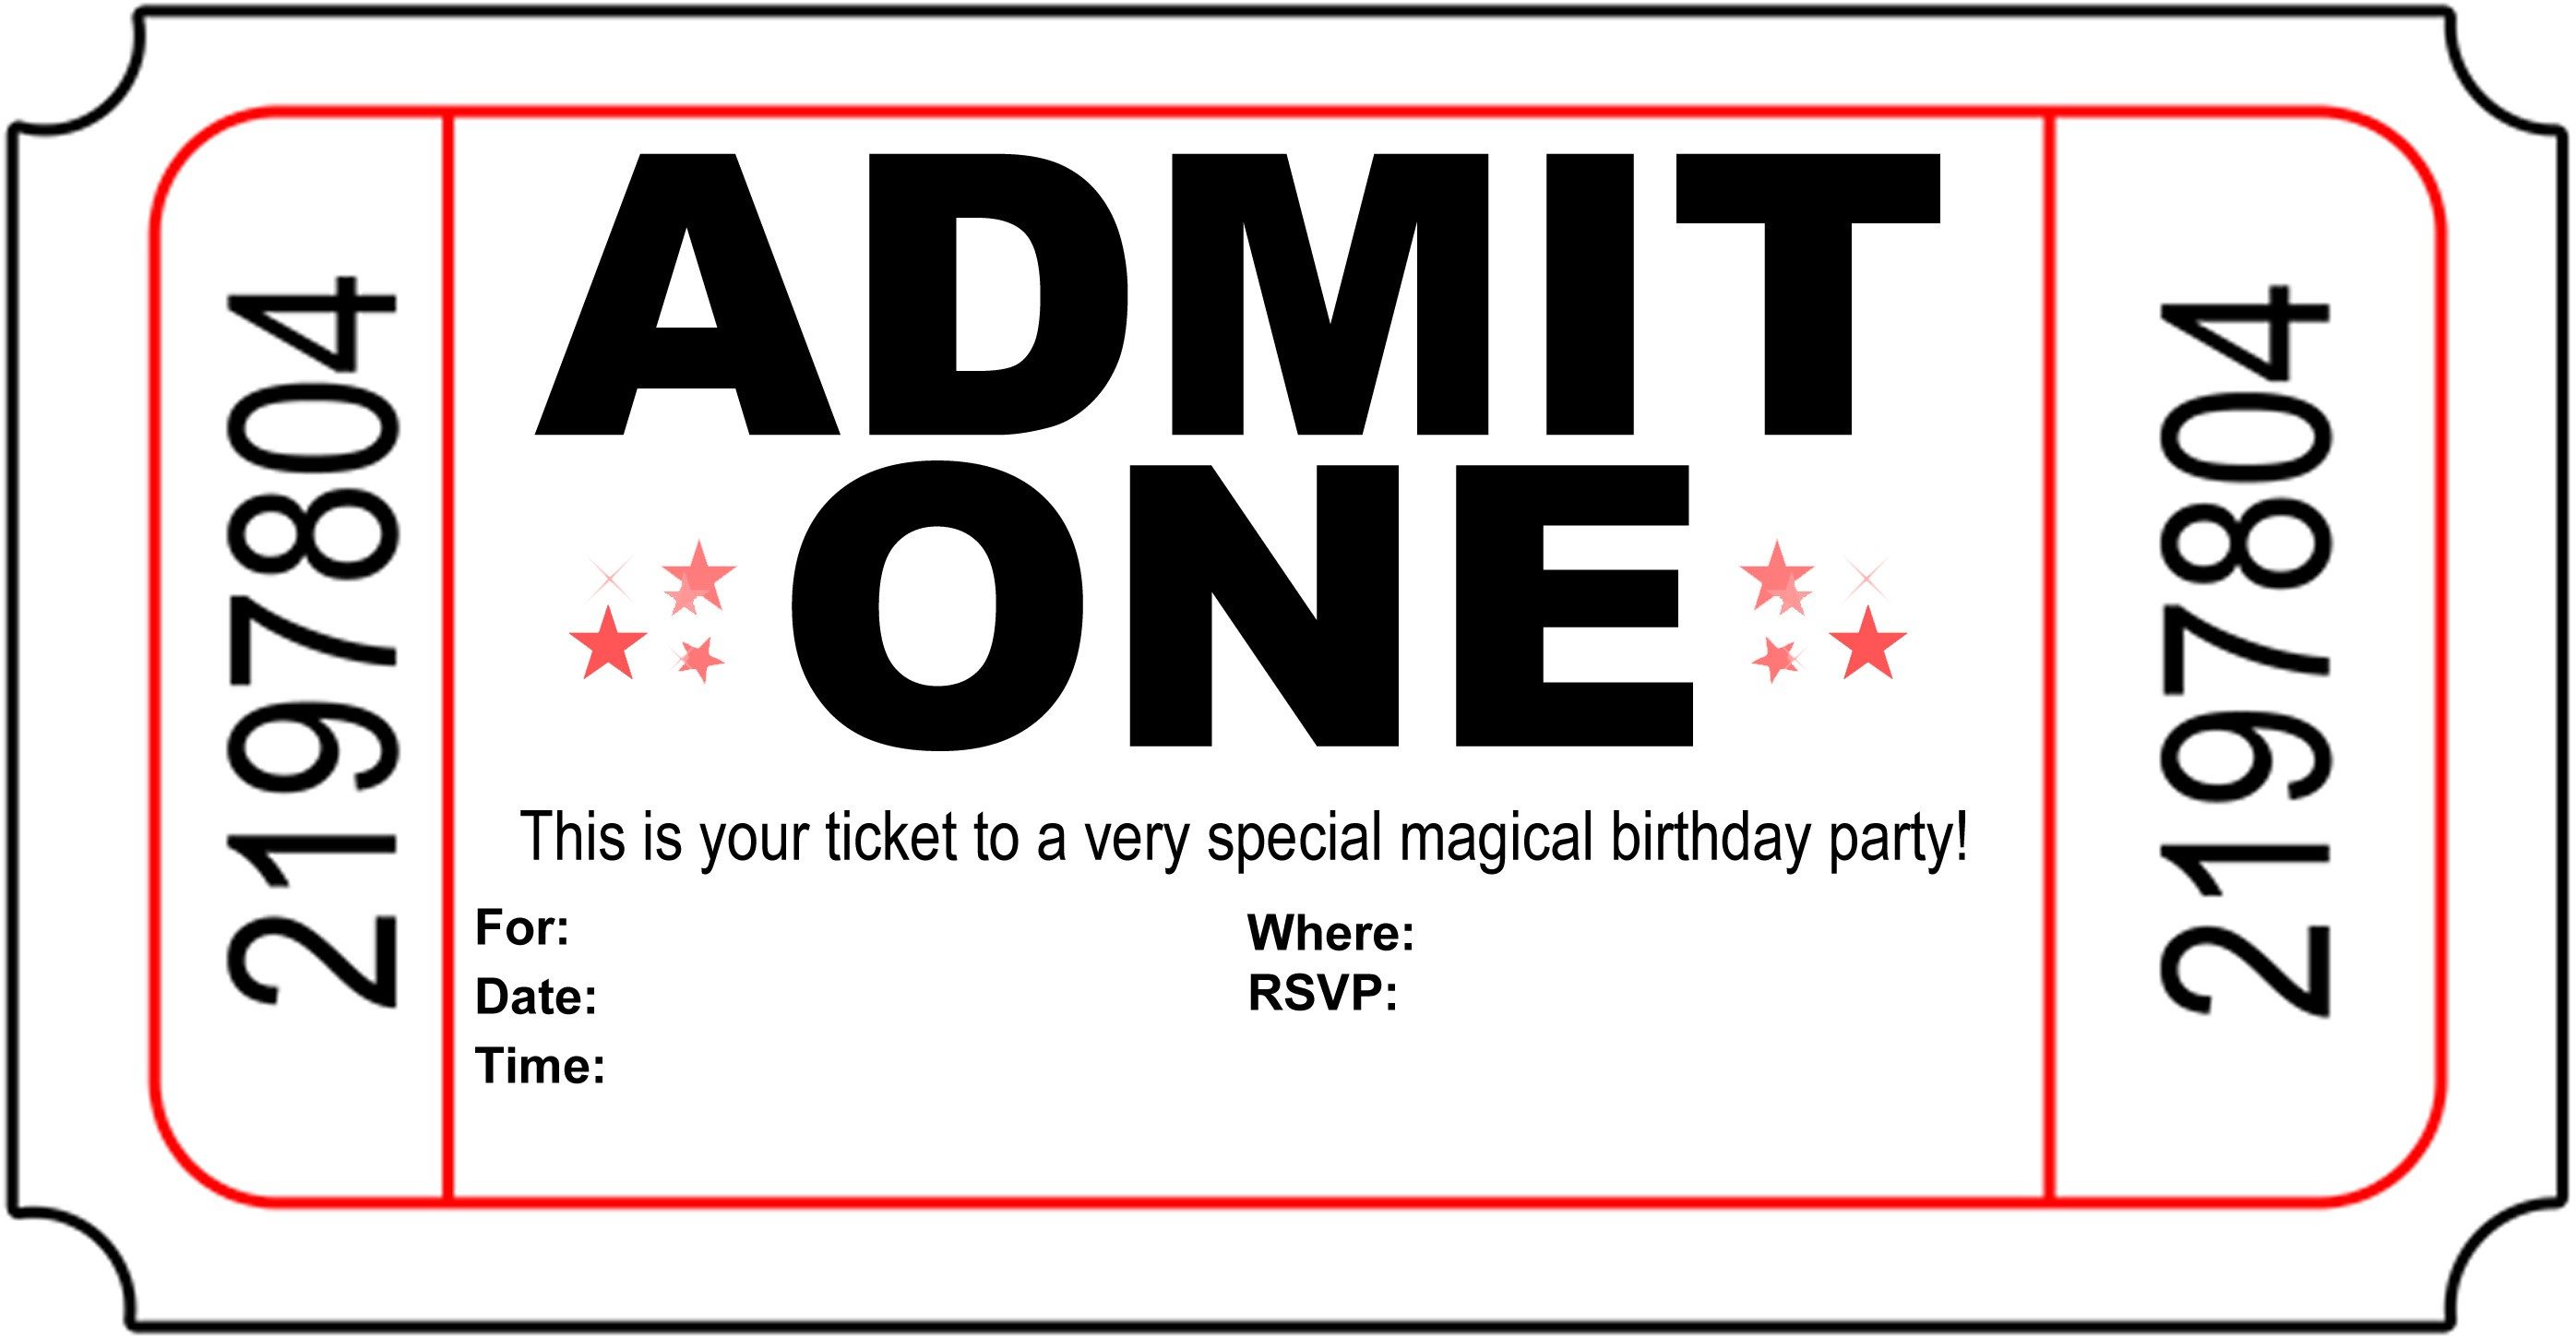 design your own birthday invitations free printable ; Birthday-Party-Invitation-Images-Free-is-one-of-the-best-idea-for-you-to-make-your-own-birthday-Invitation-design-1